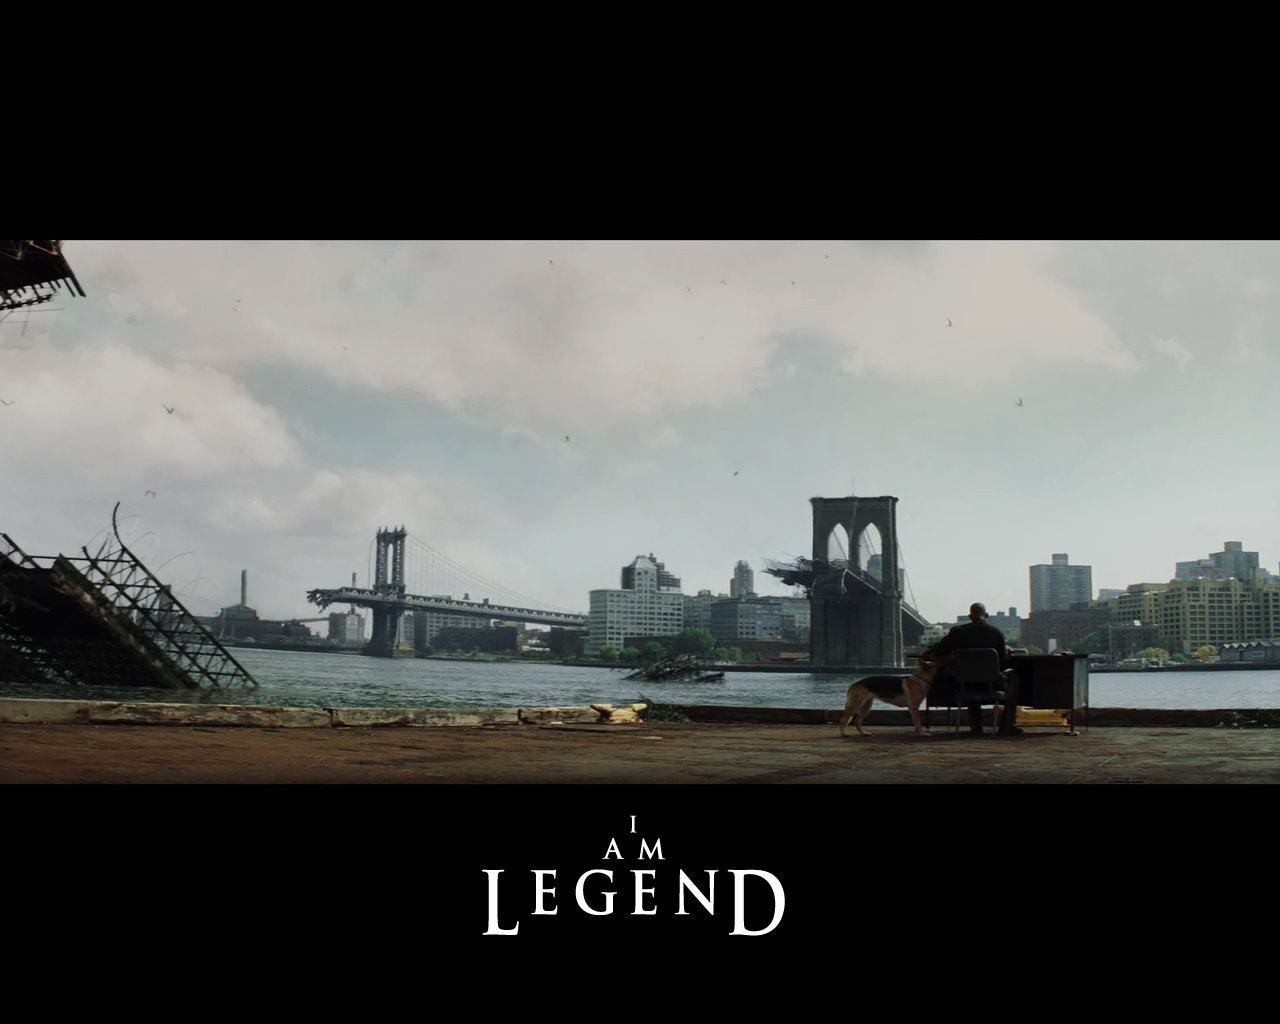 I am legend 4 by Vorticon87 1280x1024